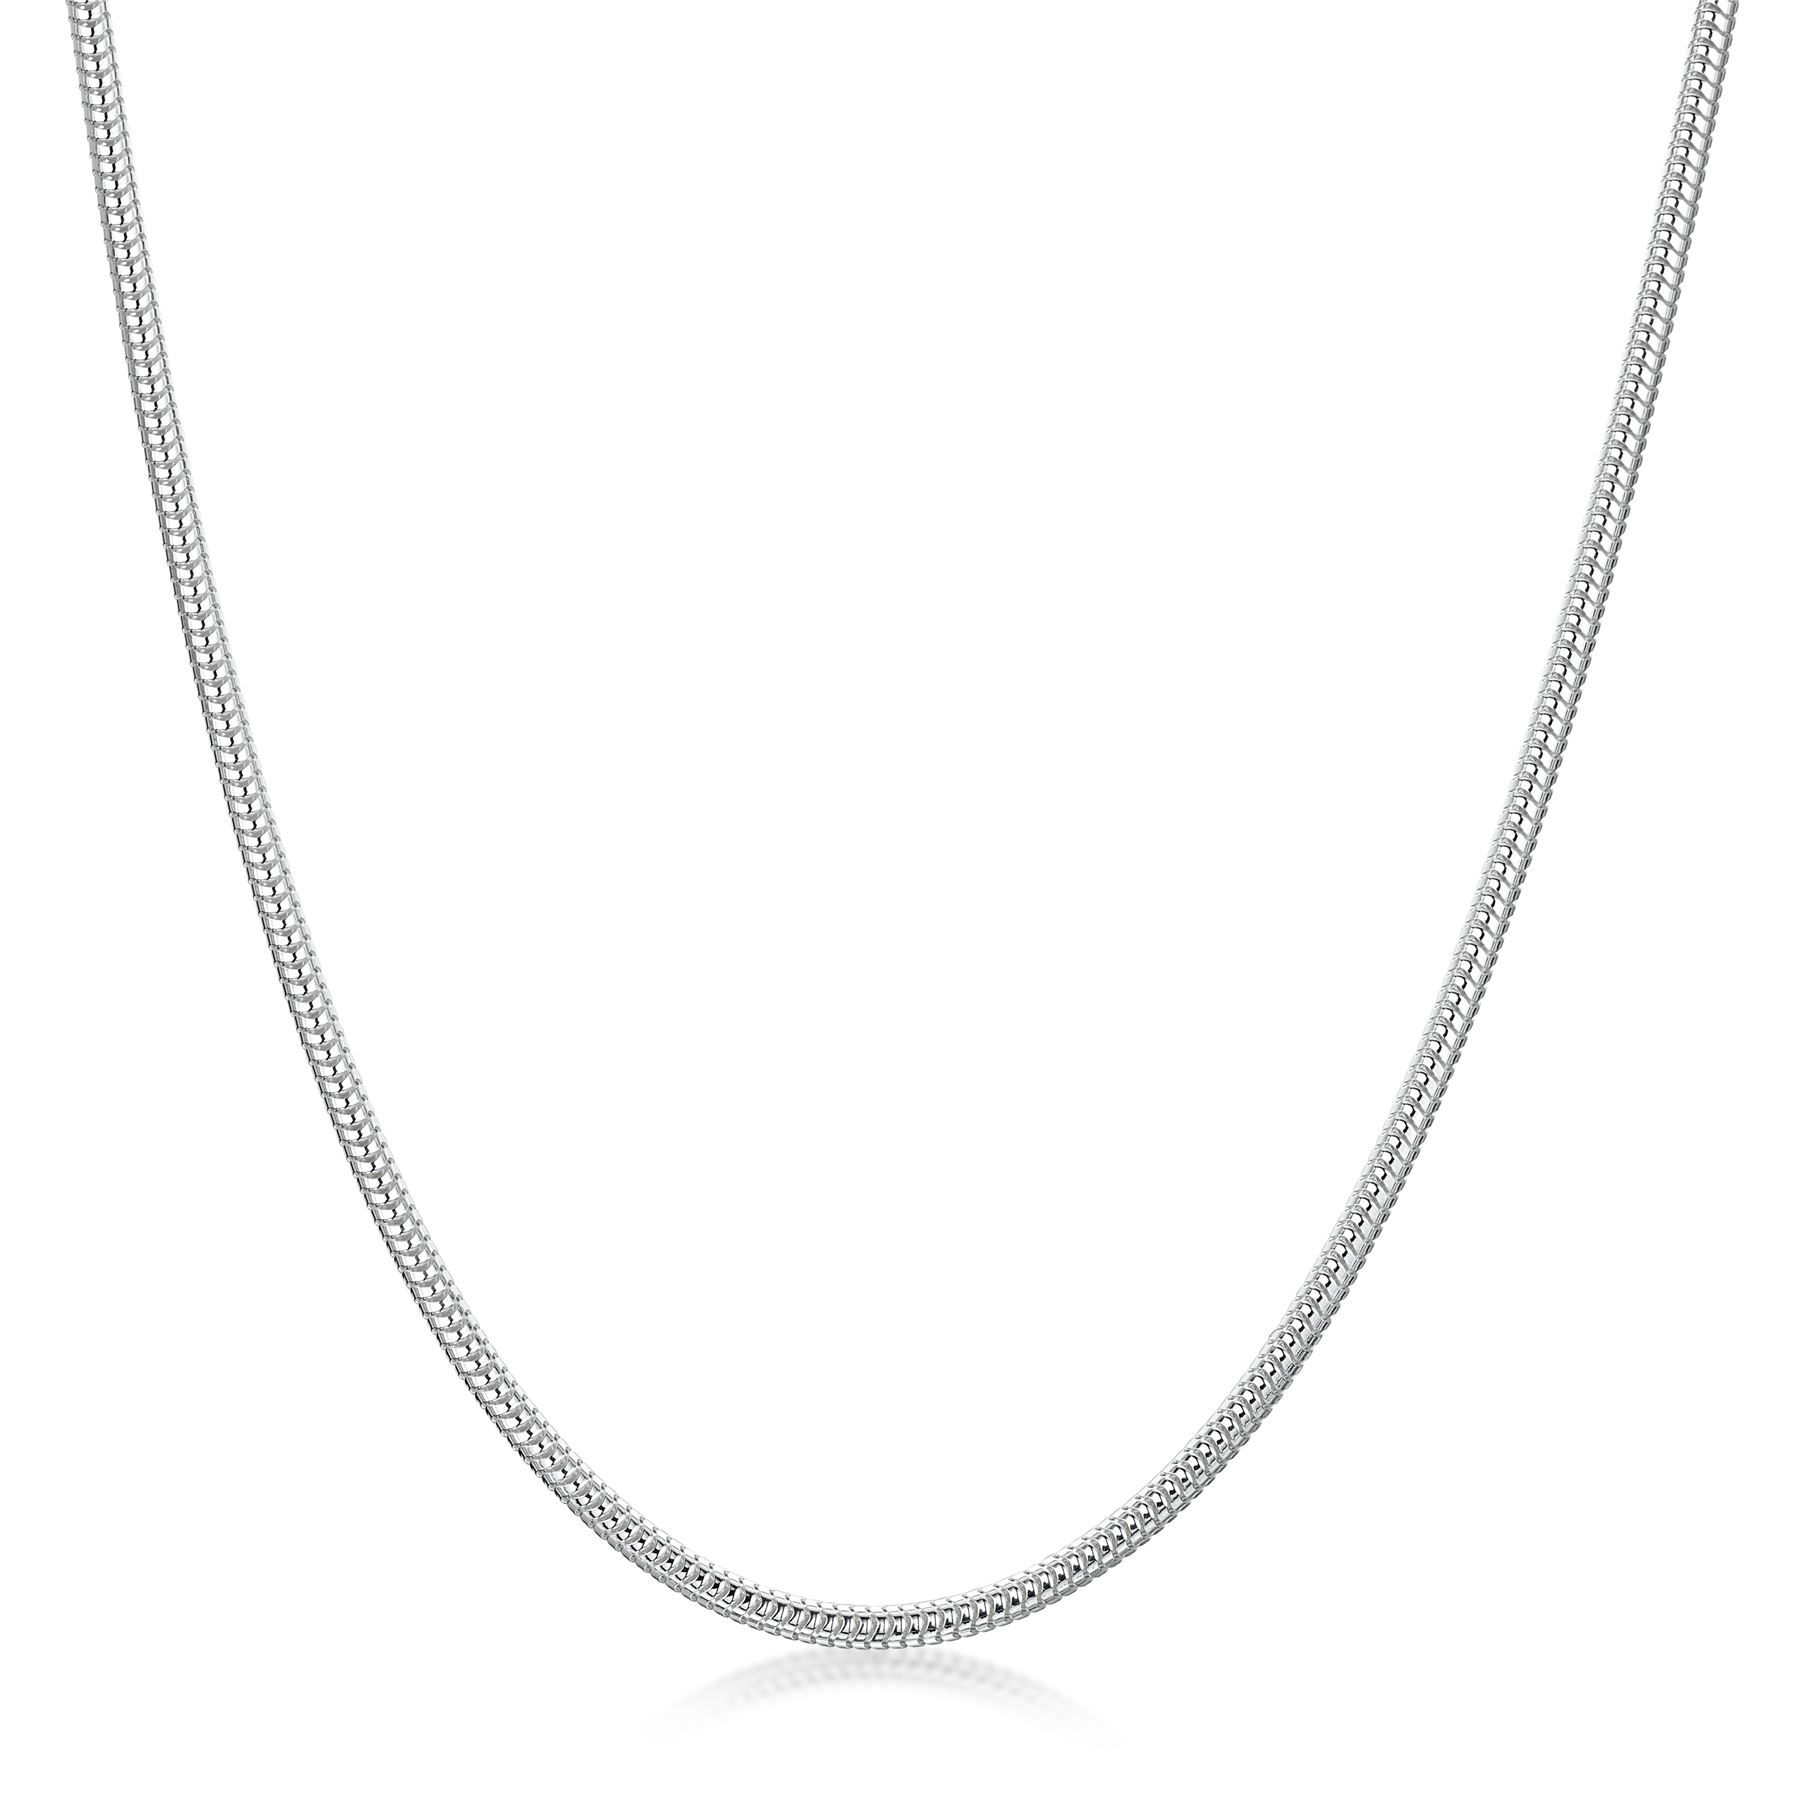 Amberta Genuine Real 925 Sterling Silver Long Solid Necklace Chain Made in Italy